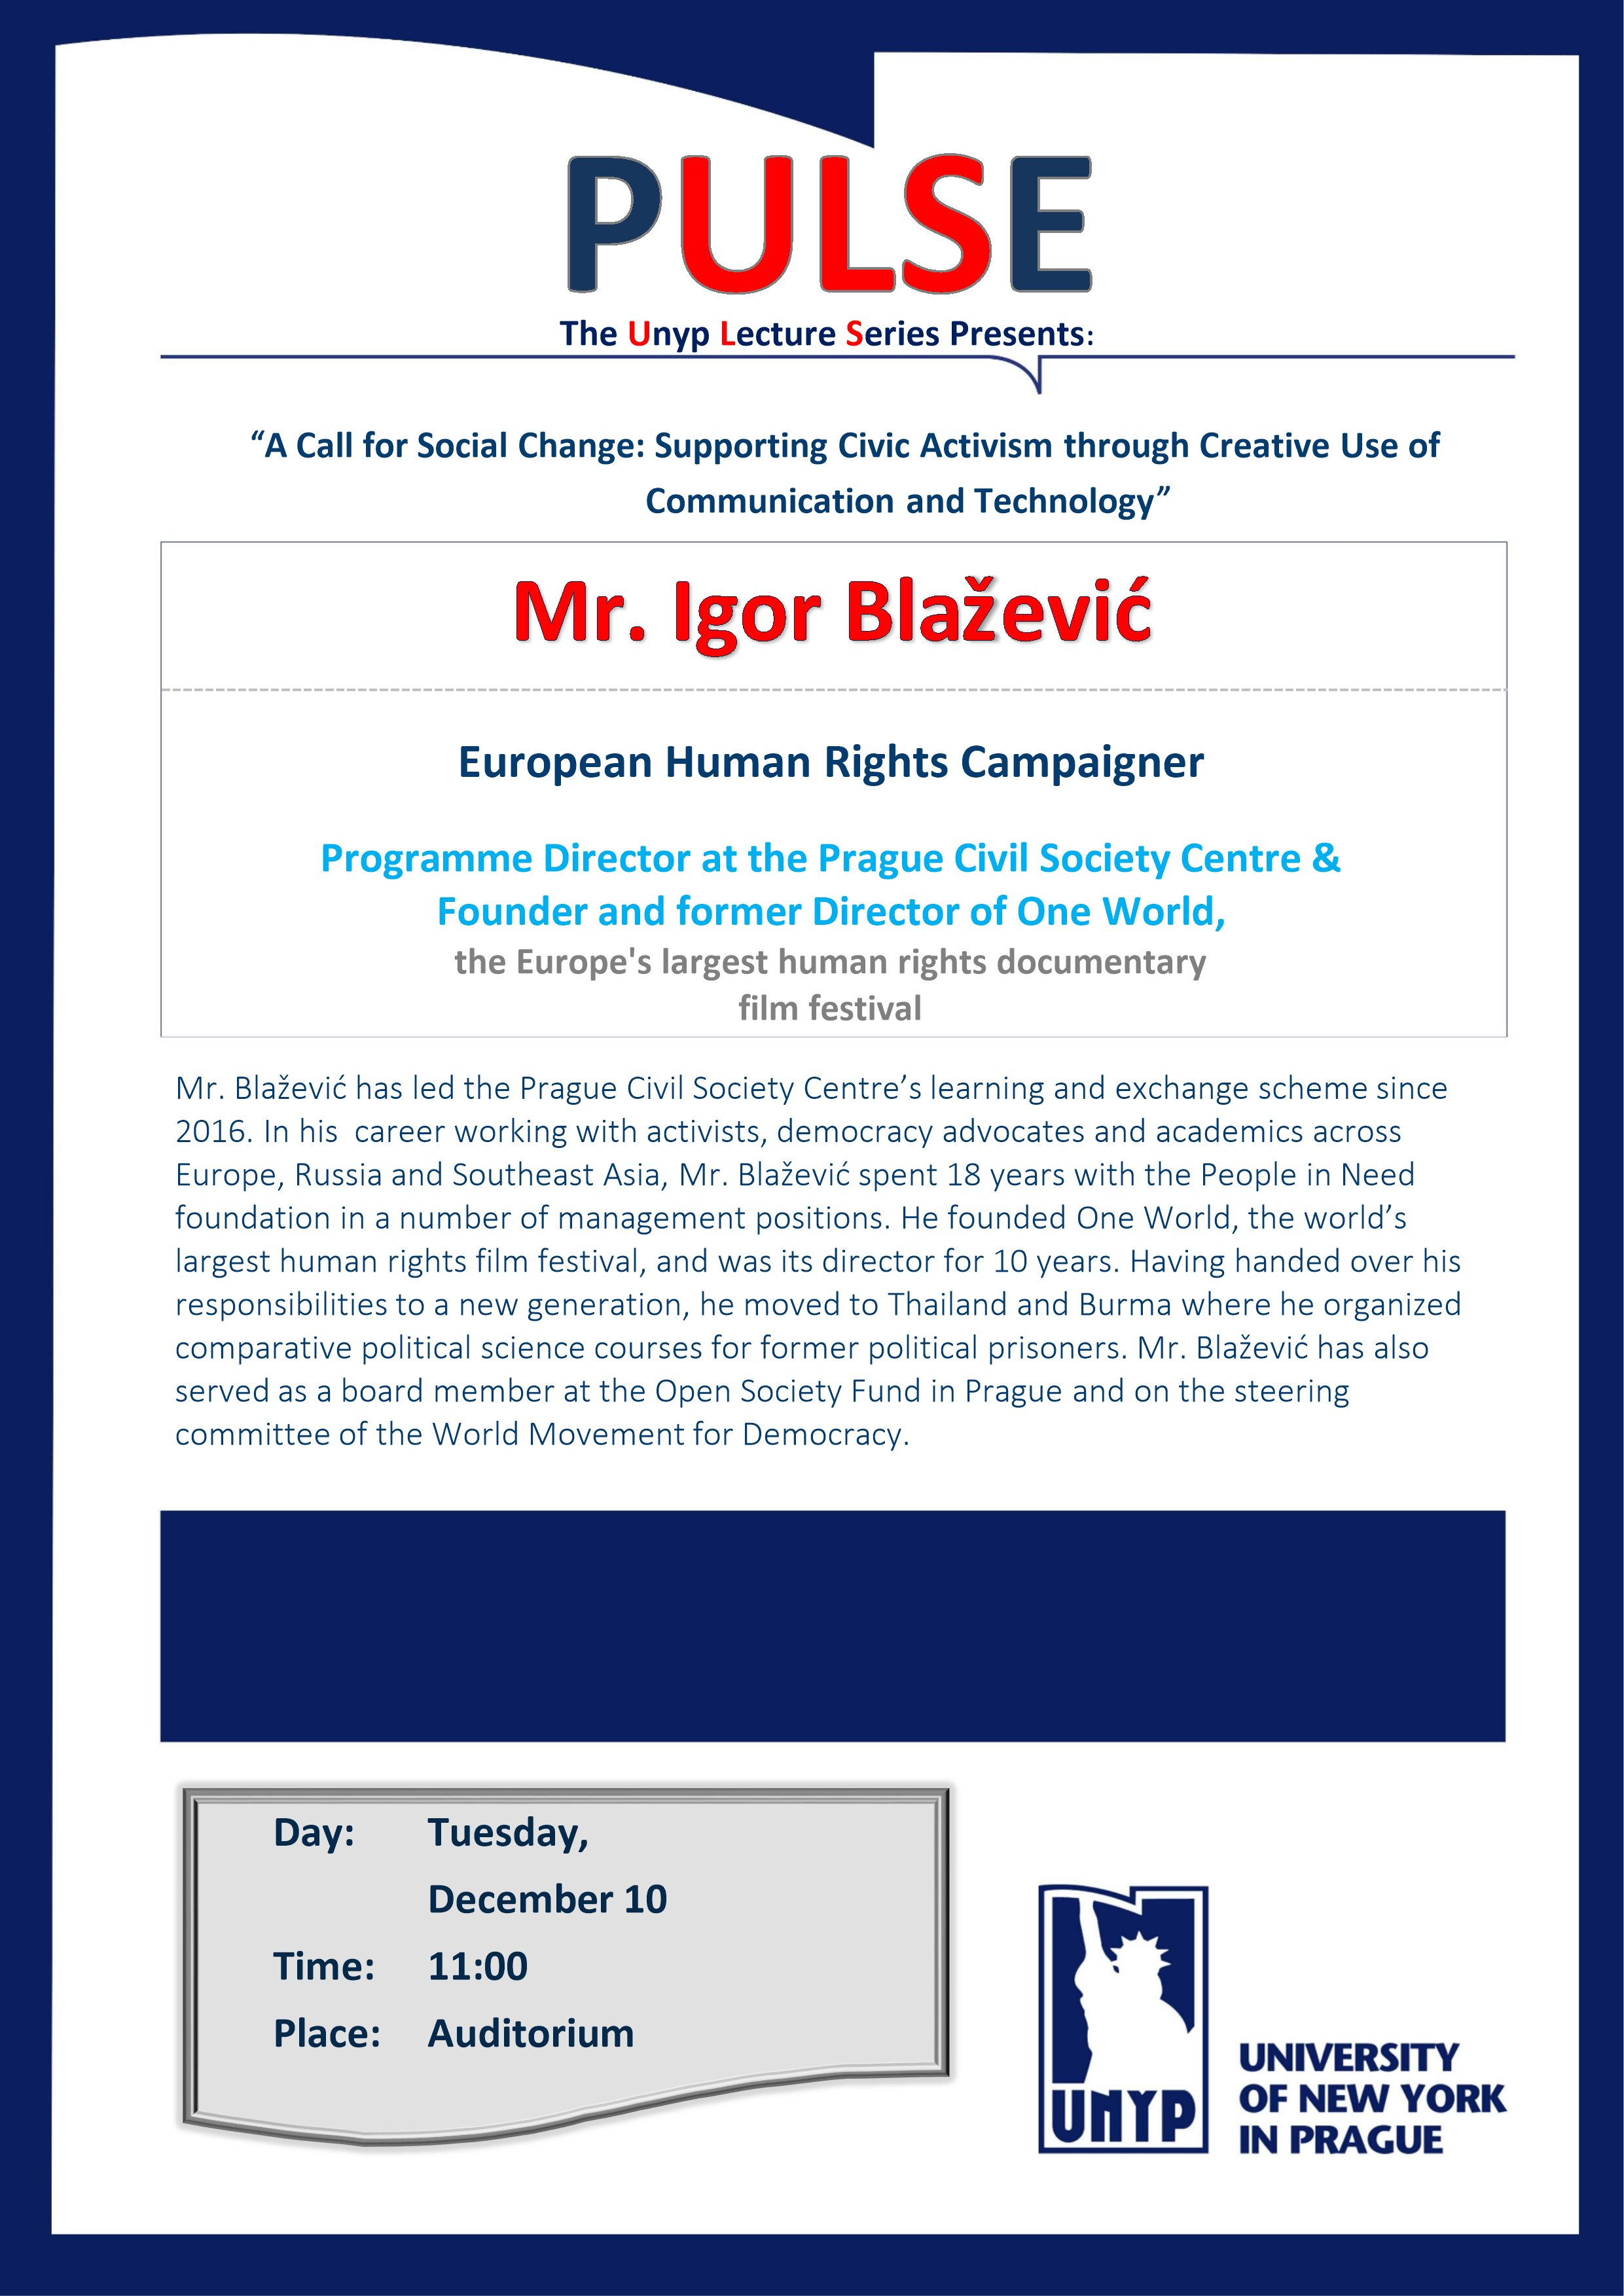 PULSE Lecture: A Call for Social Change: Supporting Civic Activism through Creative Use of Communication and Technology - Igor Blazevic, Dec 10, 11 am, Auditorium